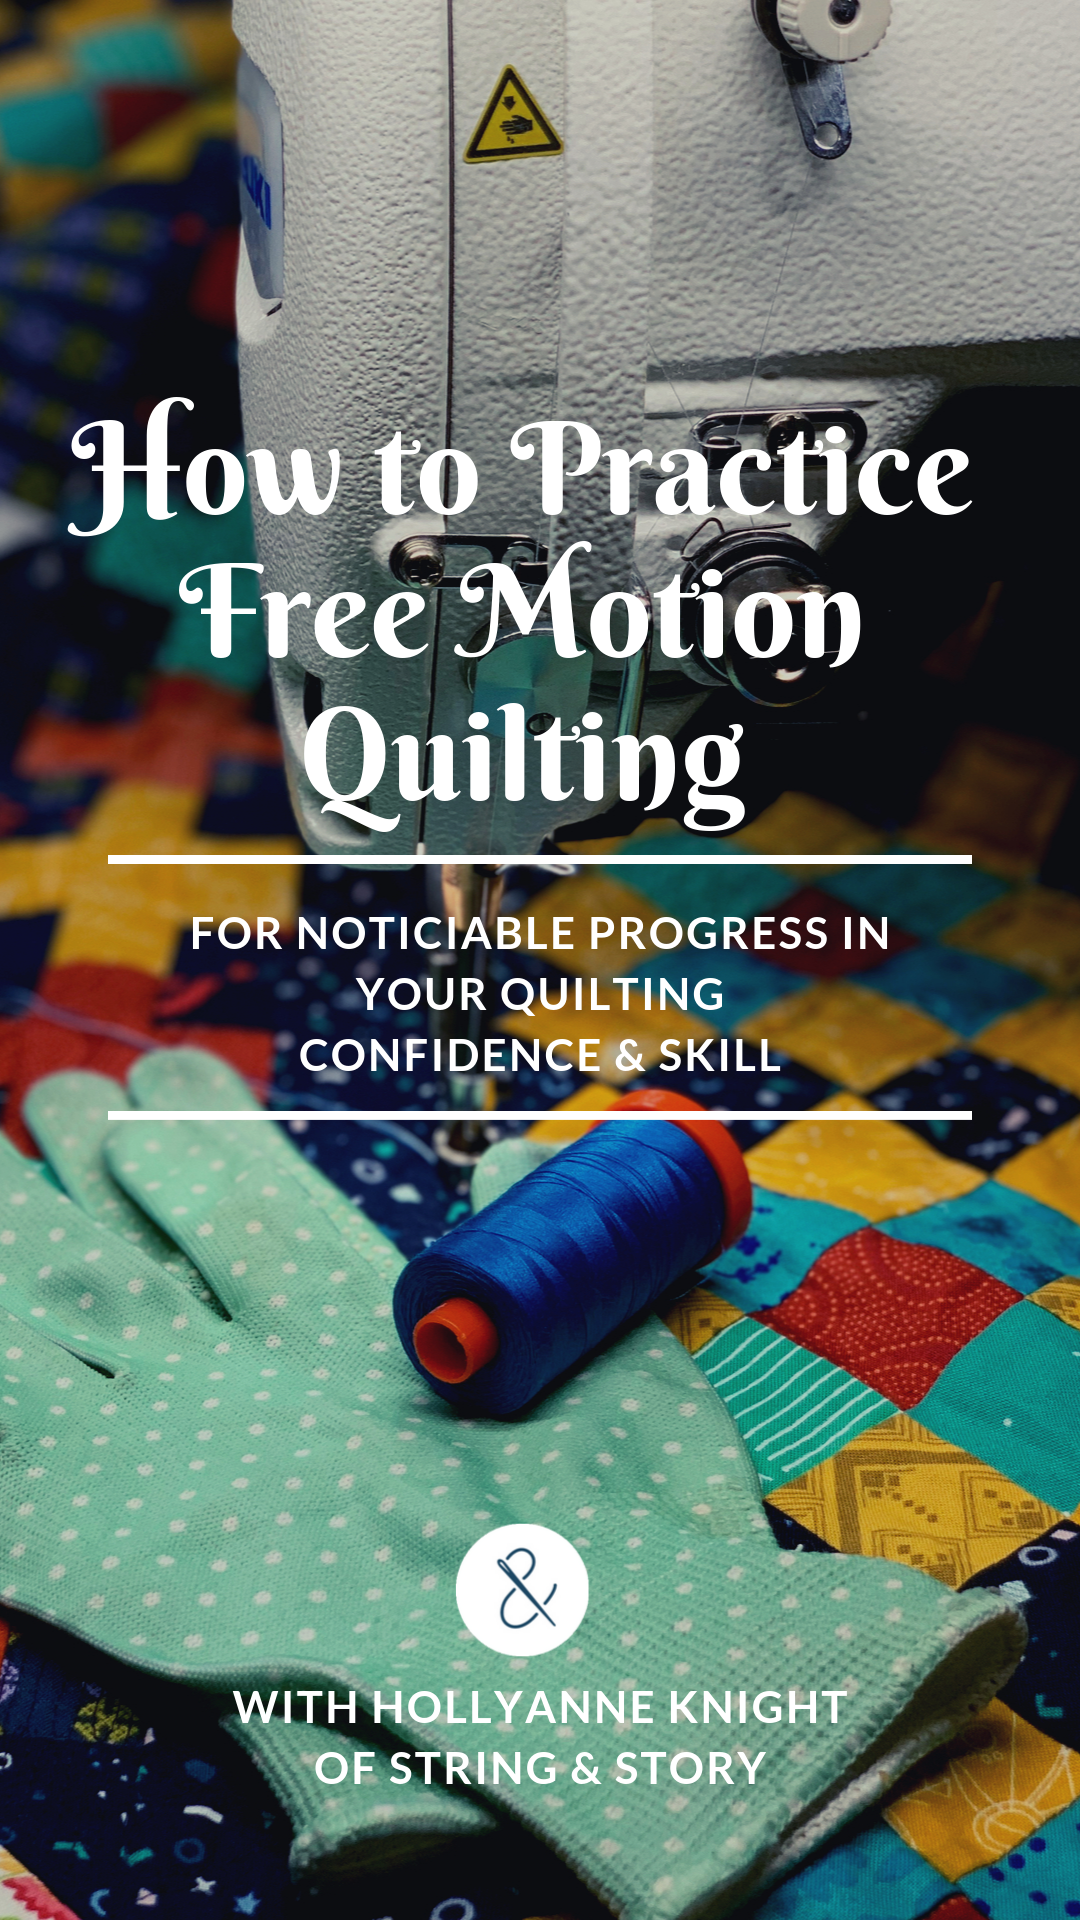 Learn a system and routine for practicing your Free Motion Quilting so that you can become a Quilting Rockstar!